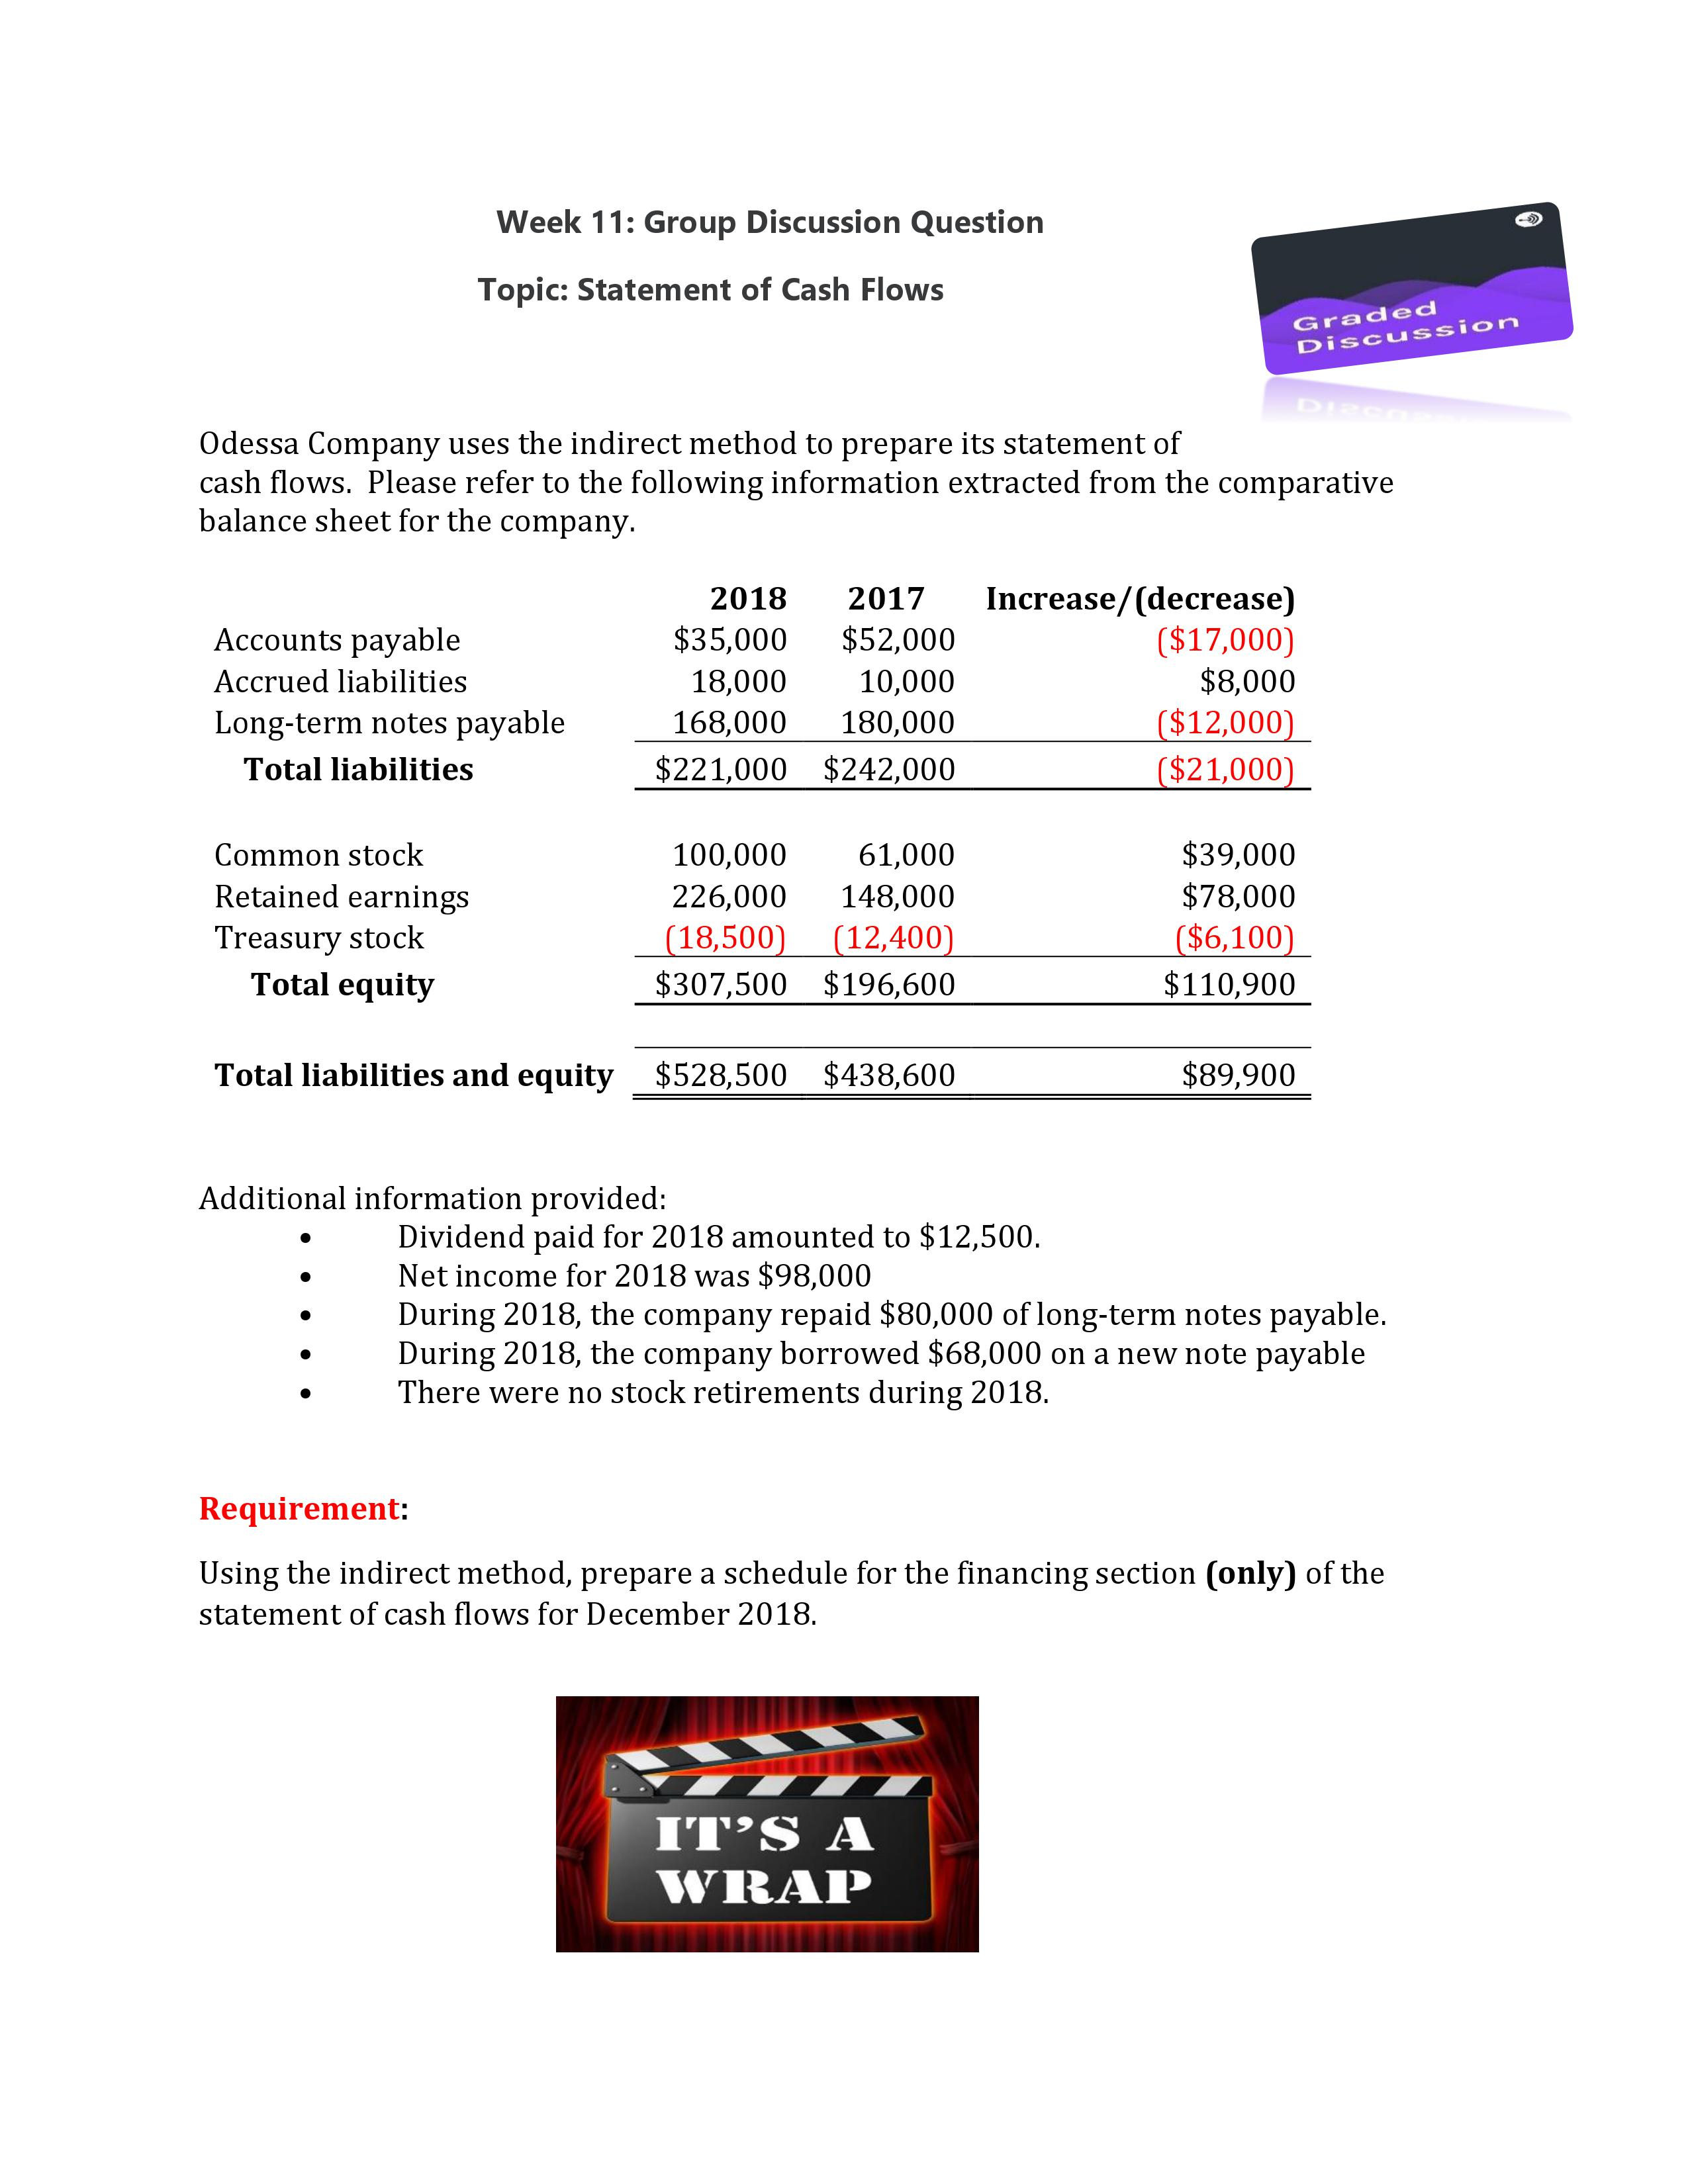 Week 11: Group Discussion Question Topic: Statement of Cash Flows Graded Discussion DIRCO Odessa Company uses the indirect method to prepare its statement of cash flows. Please refer to the following information extracted from the comparative balance sheet for the company Increase/(decrease) ($17,000) $8,000 ($12,000) ($21,000) 2017 2018 Accounts payable $35,000 $52,000 Accrued liabilities 18,000 10,000 Long-term notes payable 168,000 180,000 $221,000 $242,000 Total liabilities $39,000 $78,000 Common stock 100,000 61,000 Retained earnings 226,000 148,000 (18,500) (12,400) $307,500 $196,600 Treasury stock Total equity ($6,100) $110,900 $528,500 $438,600 $89,900 Total liabilities and equity Additional information provided: Dividend paid for 2018 amounted to $12,500. Net income for 2018 was $98,000 During 2018, the company repaid $80,000 of long-term notes payable. During 2018, the company borrowed $68,000 on a new note payable There were no stock retirements during 2018. Requirement: Using the indirect method, prepare a schedule for the financing section (only) of the statement of cash flows for December 2018 IT'S A WRAP